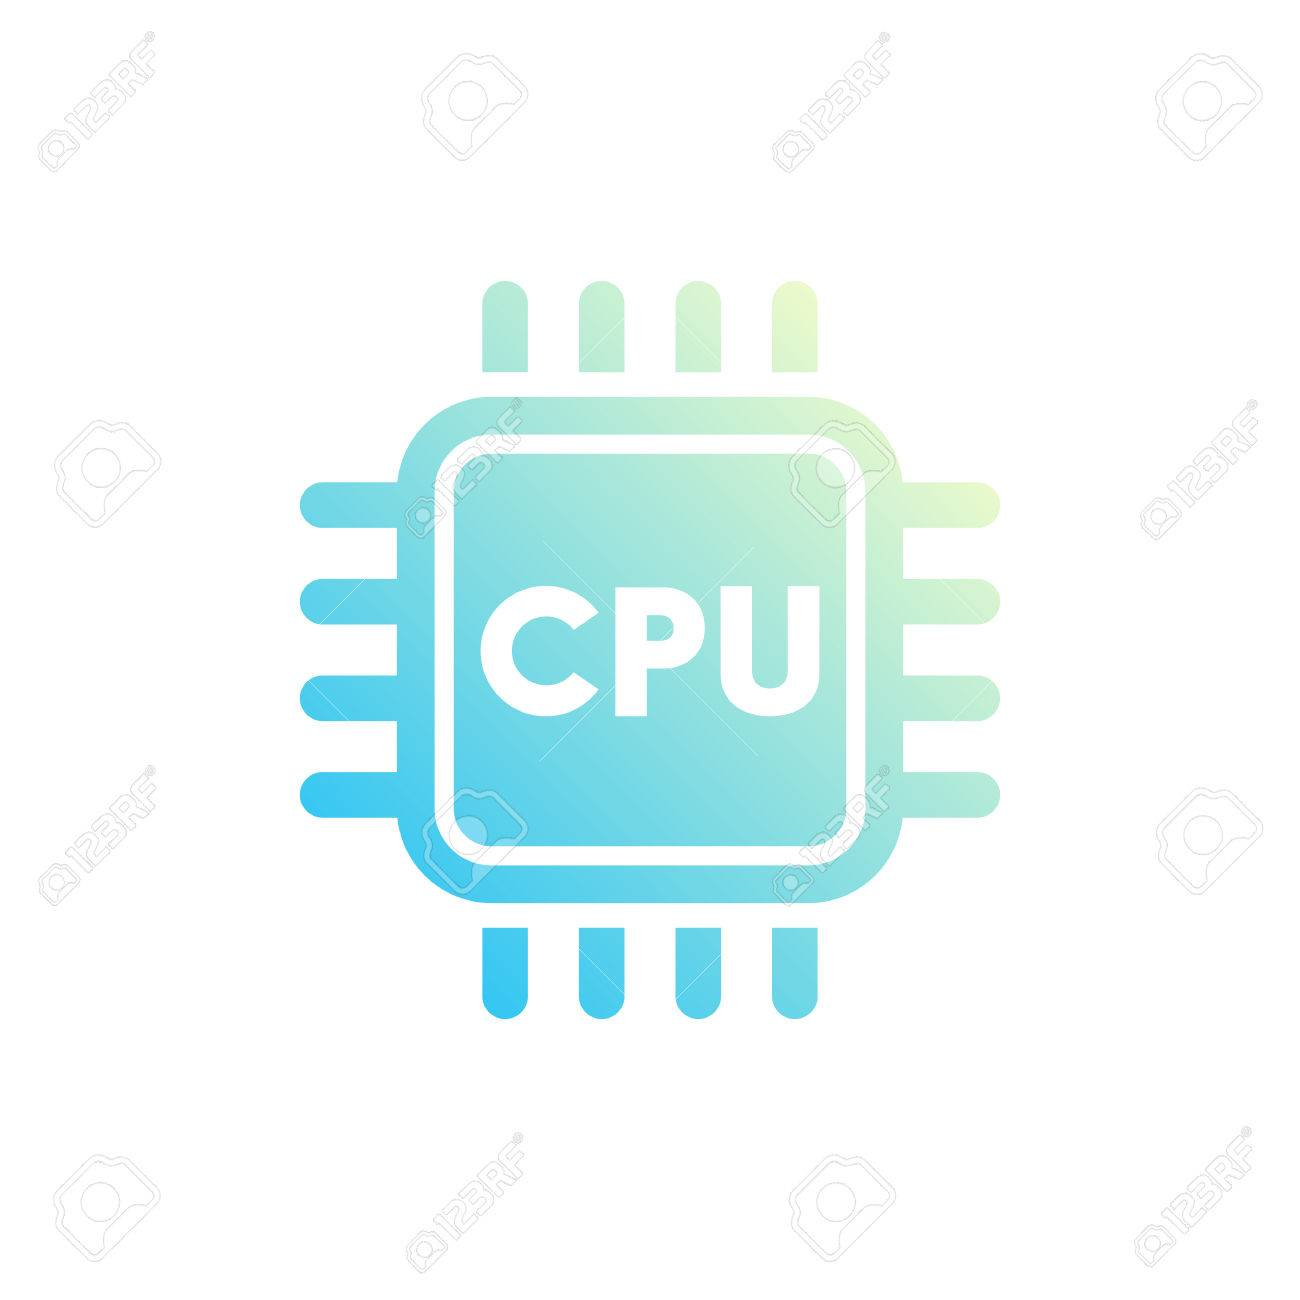 Cpu Icon Central Processing Unit Processor Electronic Circuit Diagram Of A Chipset On White